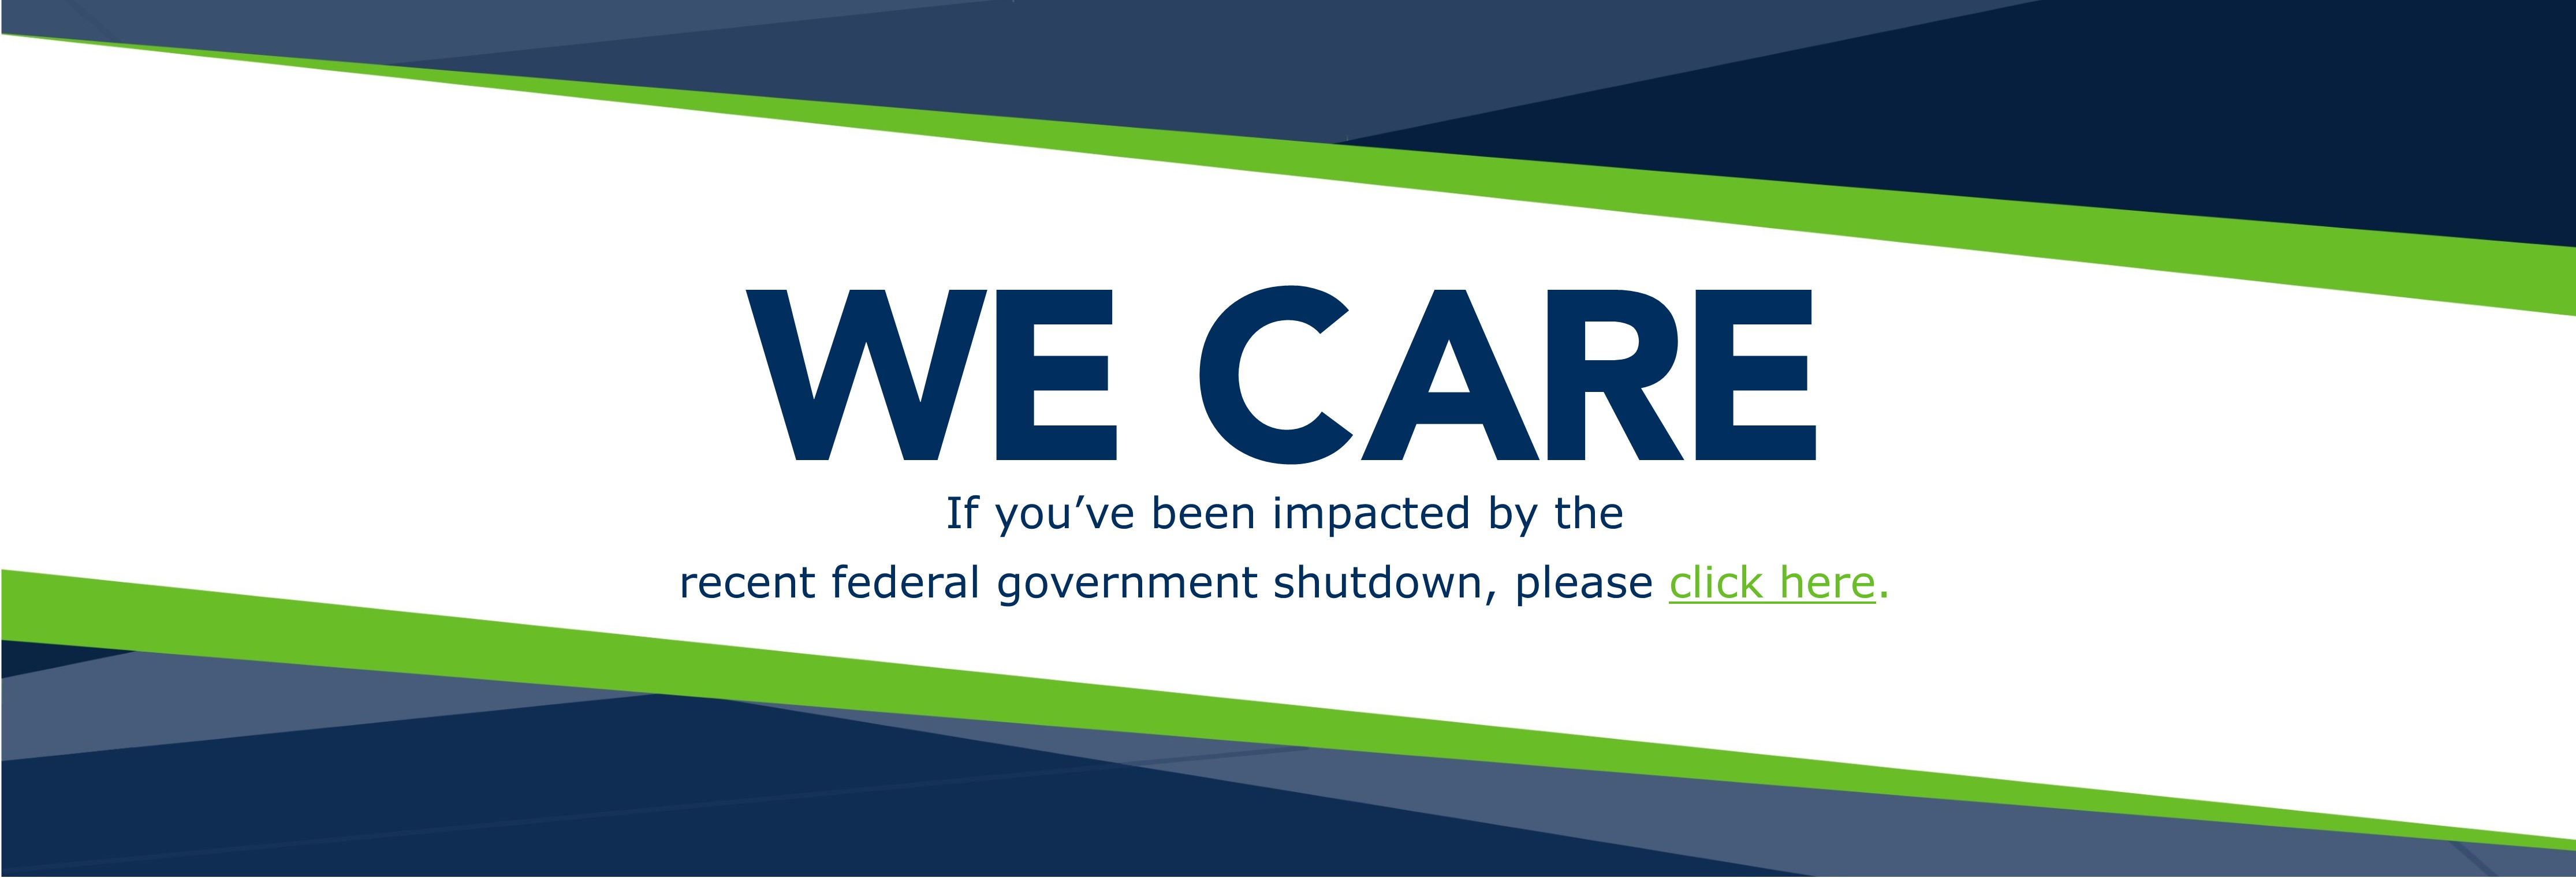 We care! If you've been impacted by the recect federal government shutdown, please click here.